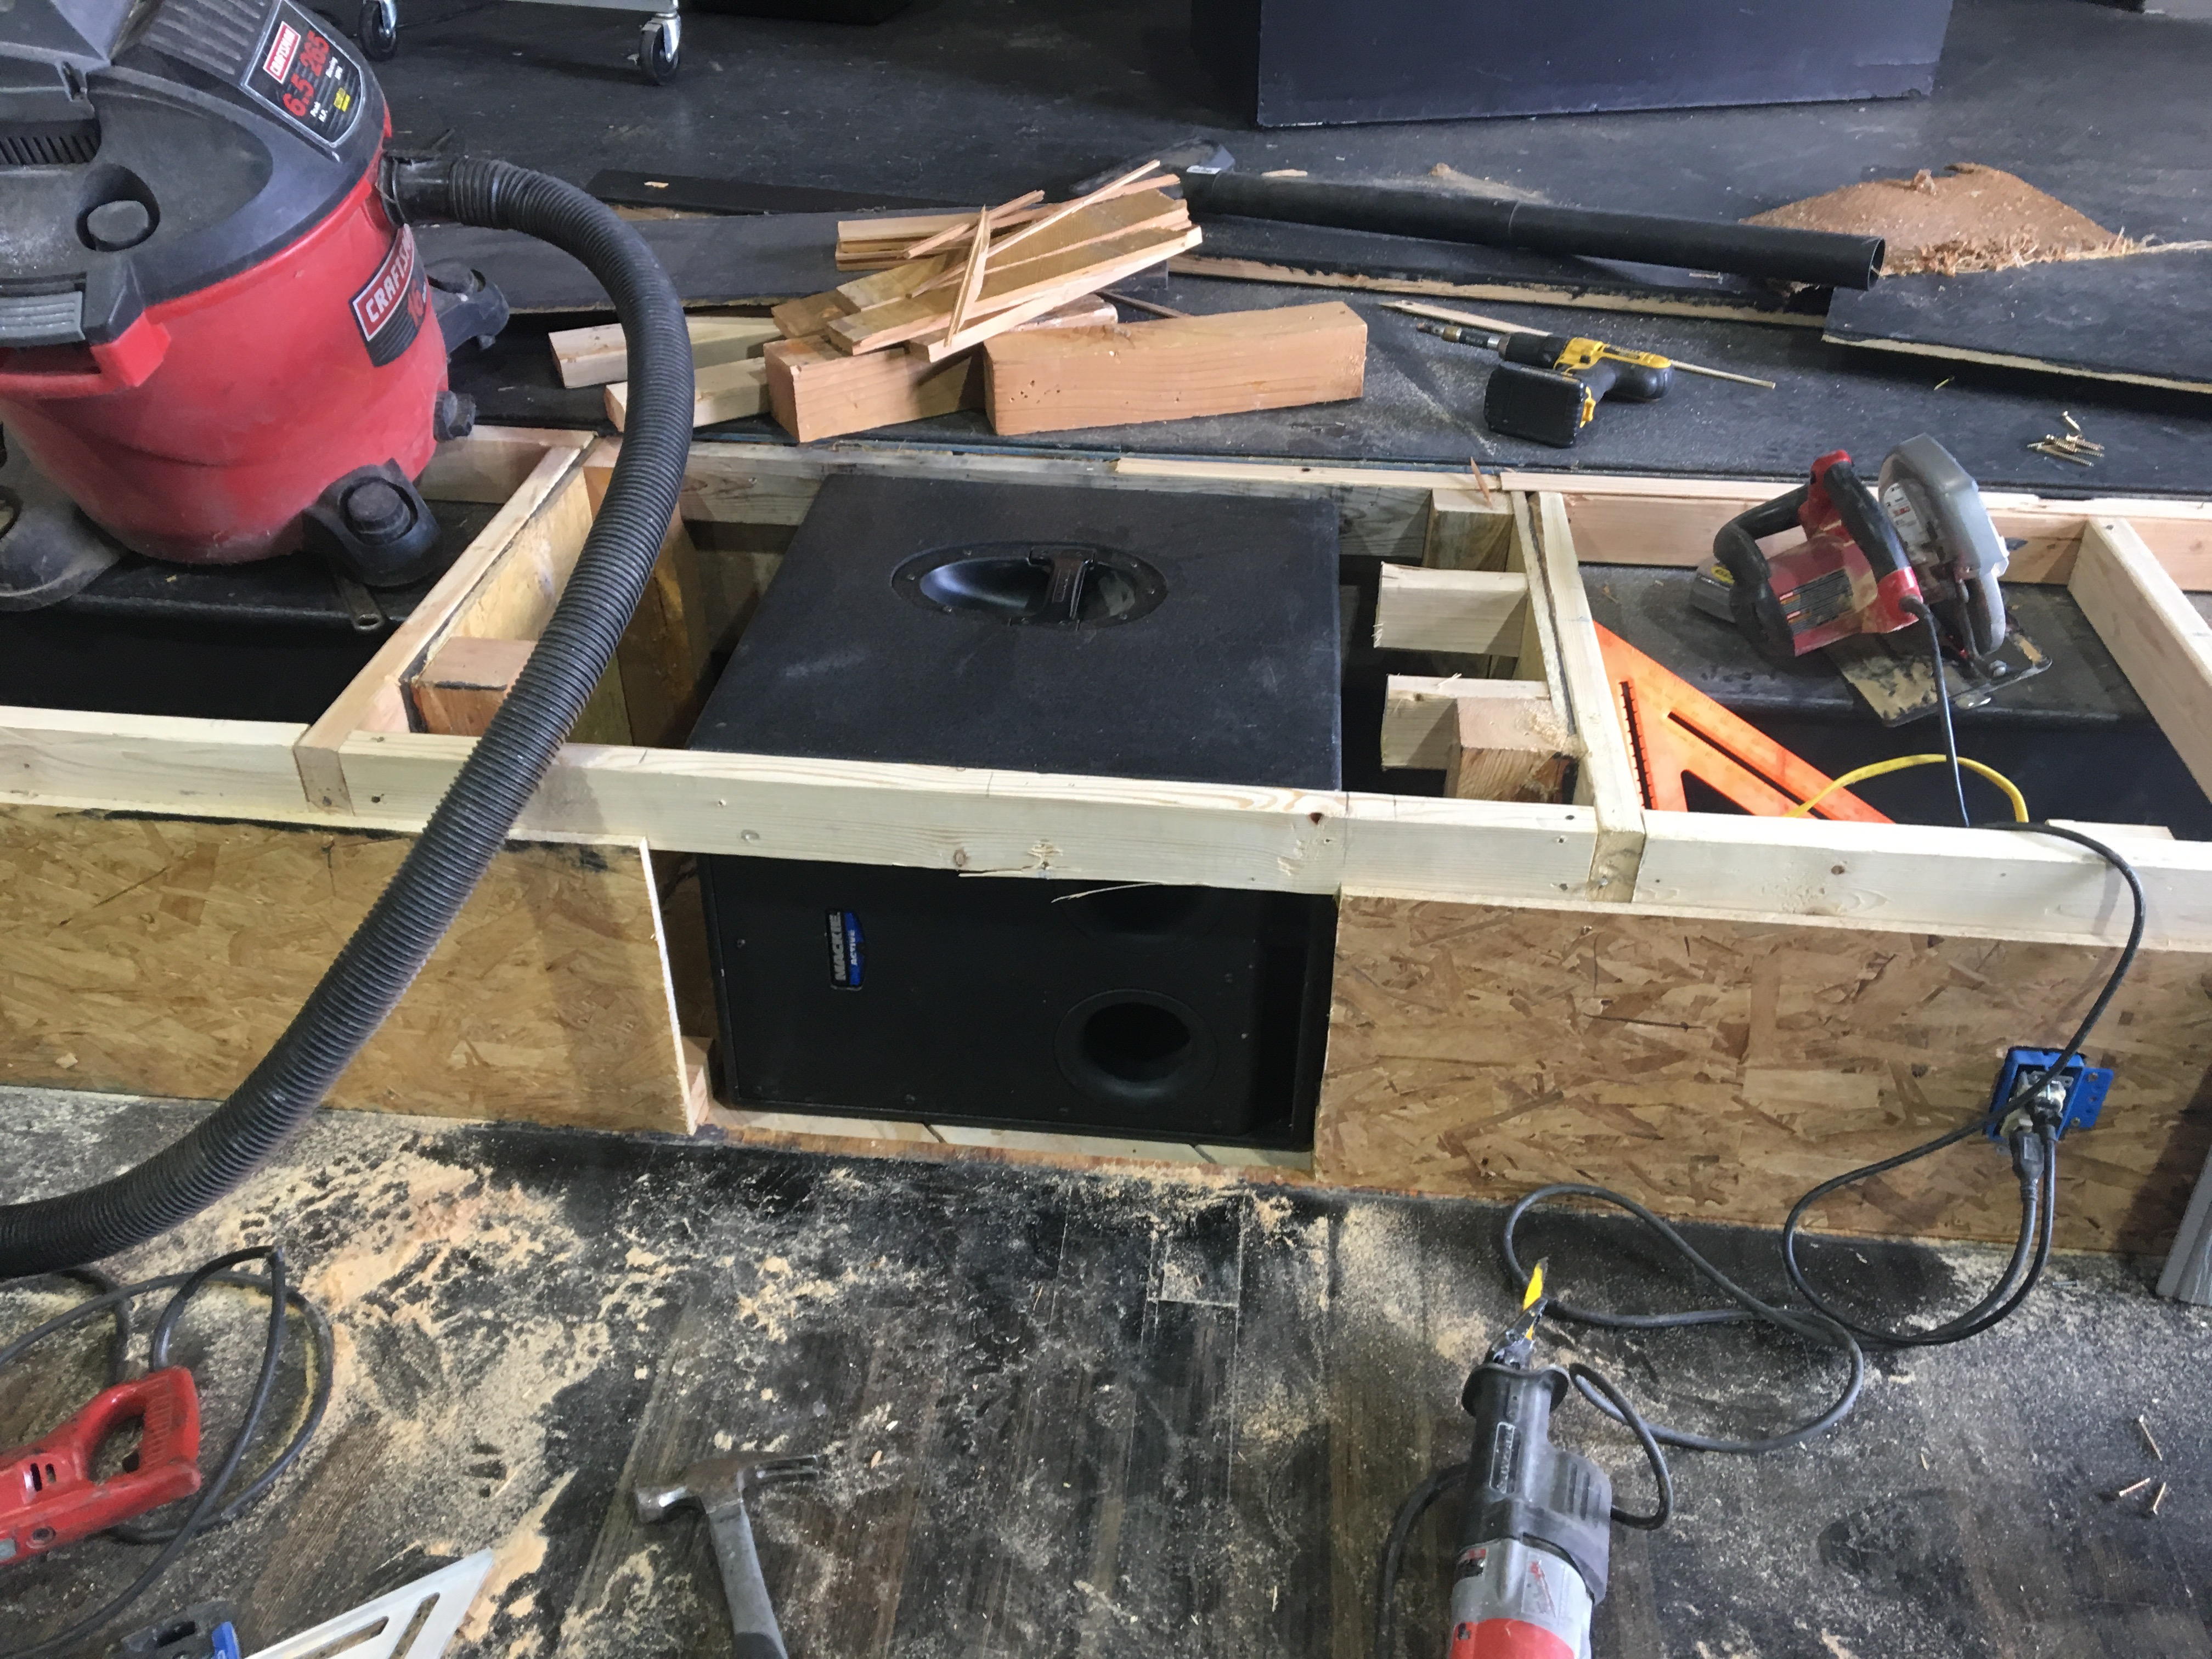 Picture of Sunken Sub, Remote Power, and Speaker Placement